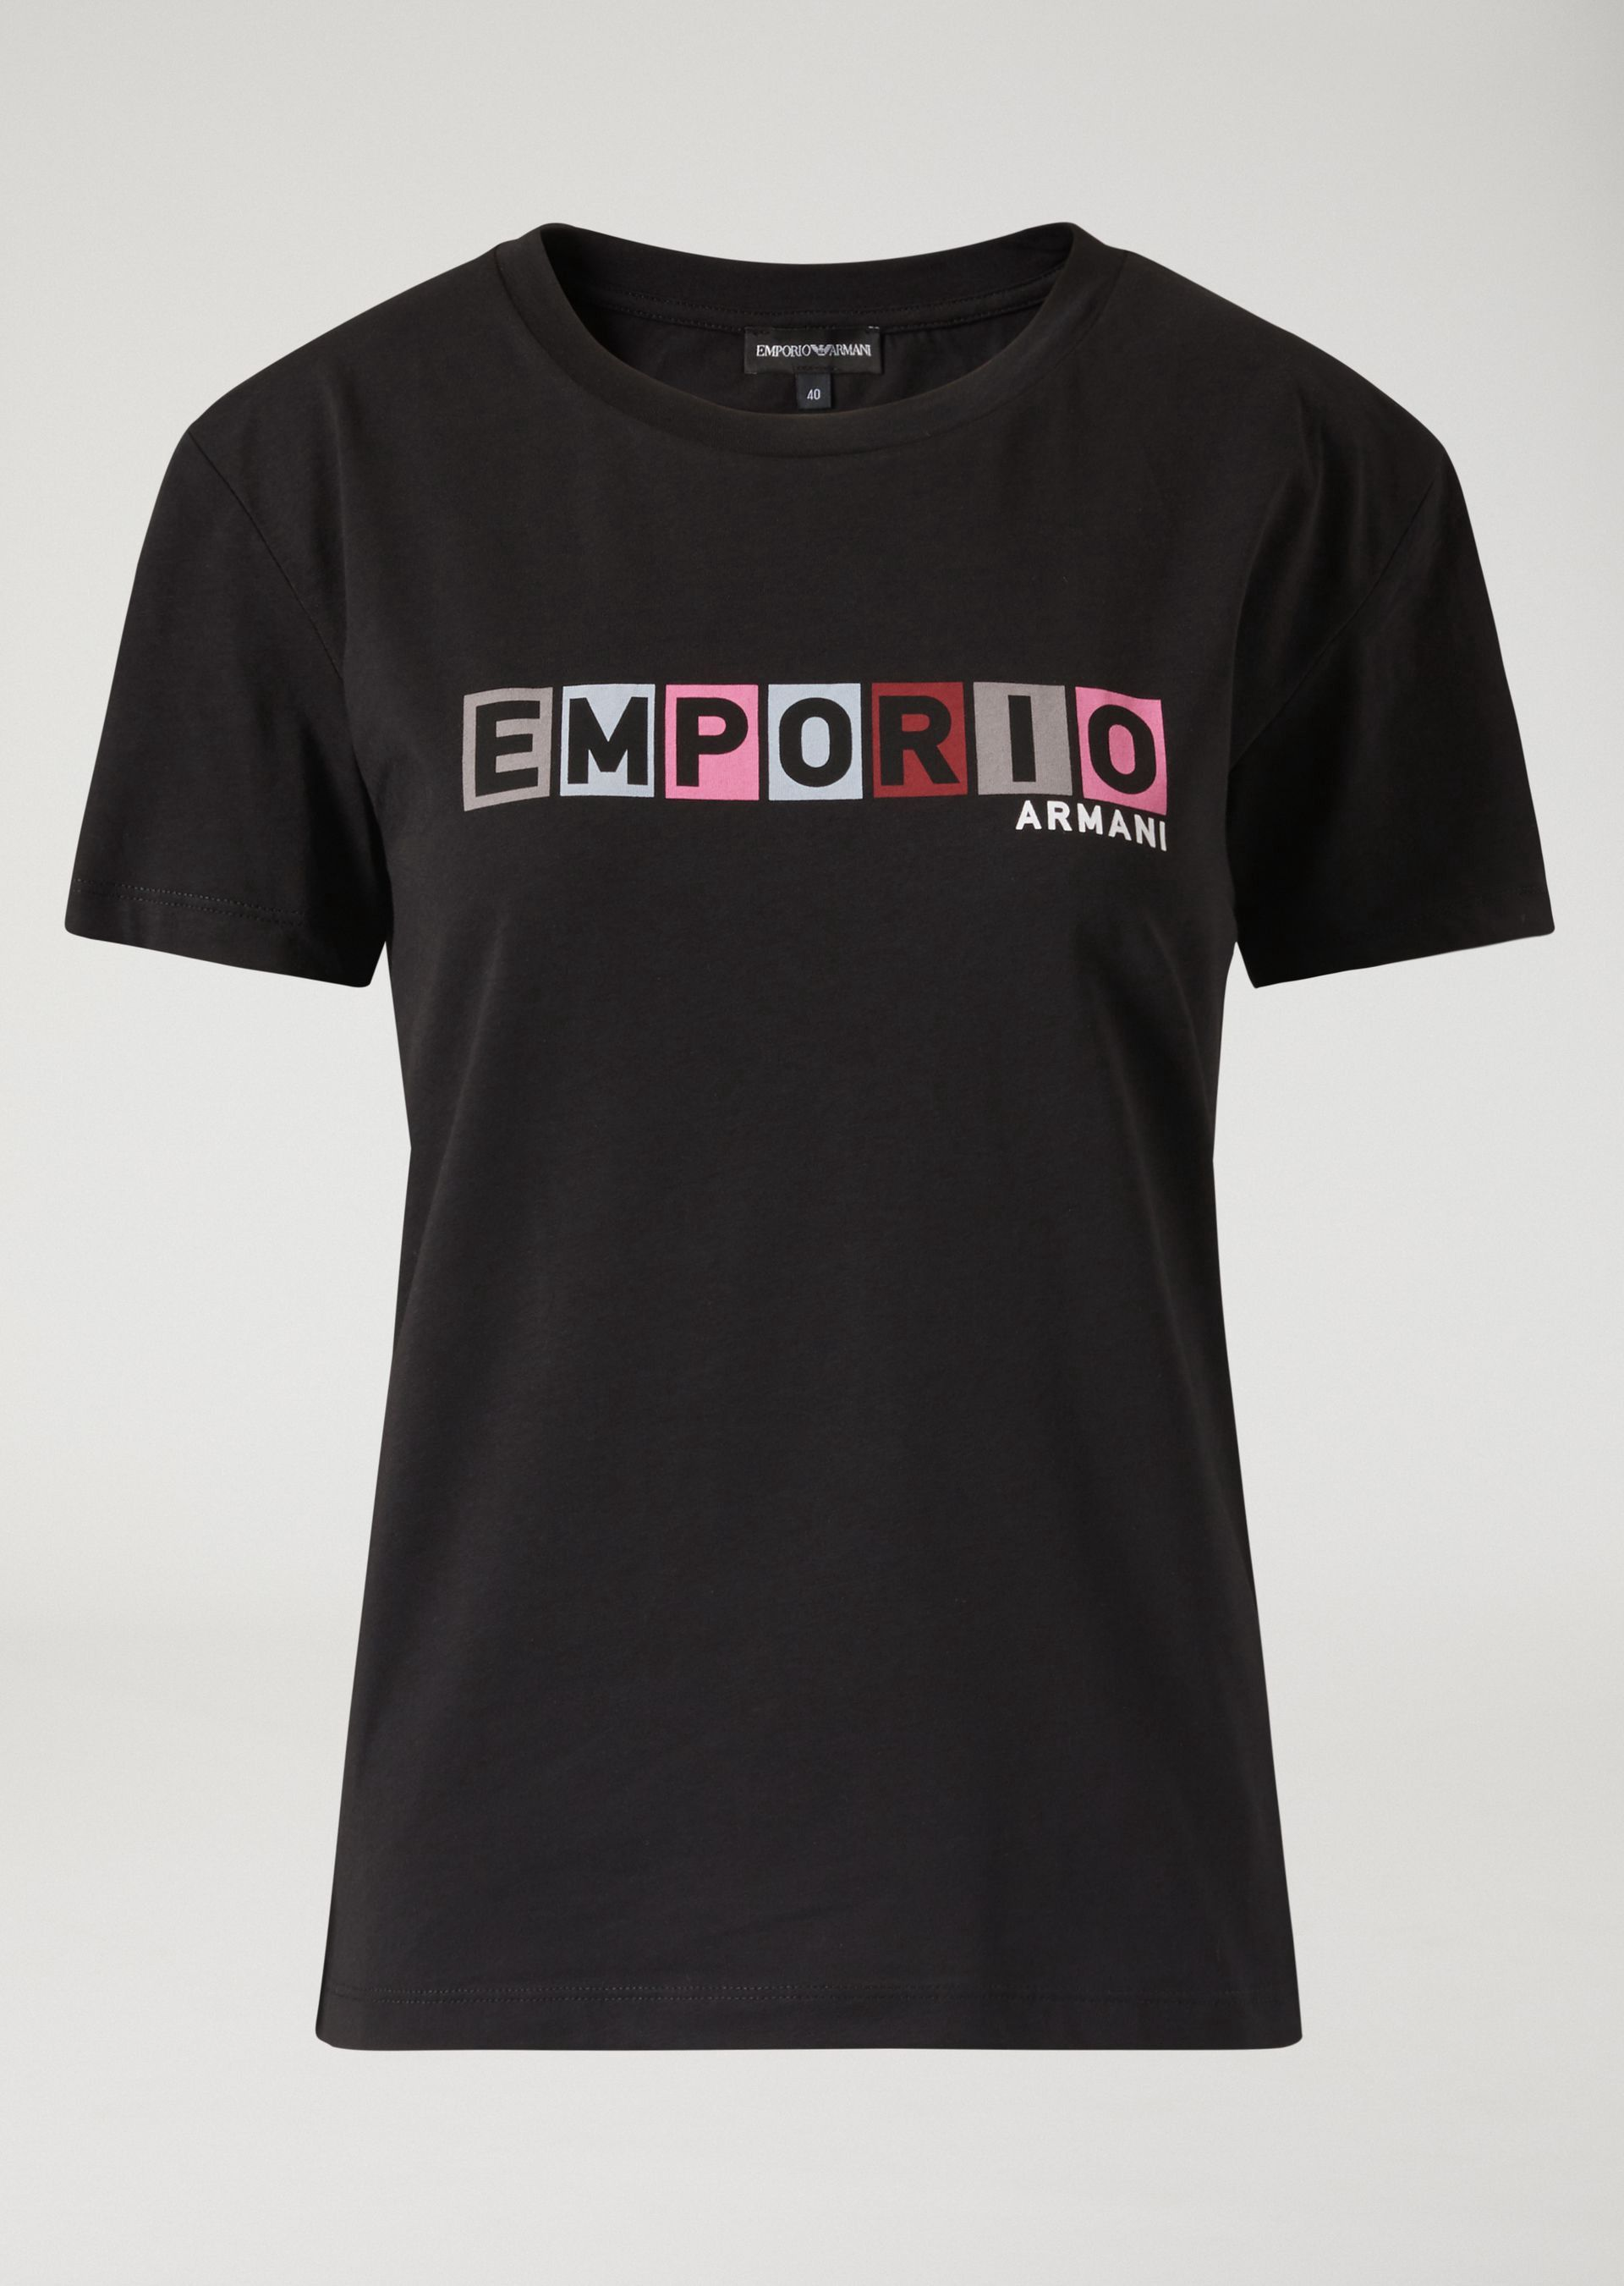 9d7185251 Emporio Armani T-Shirt In Jersey With Stencil-Effect Colour Logo - Navy  Blue 10